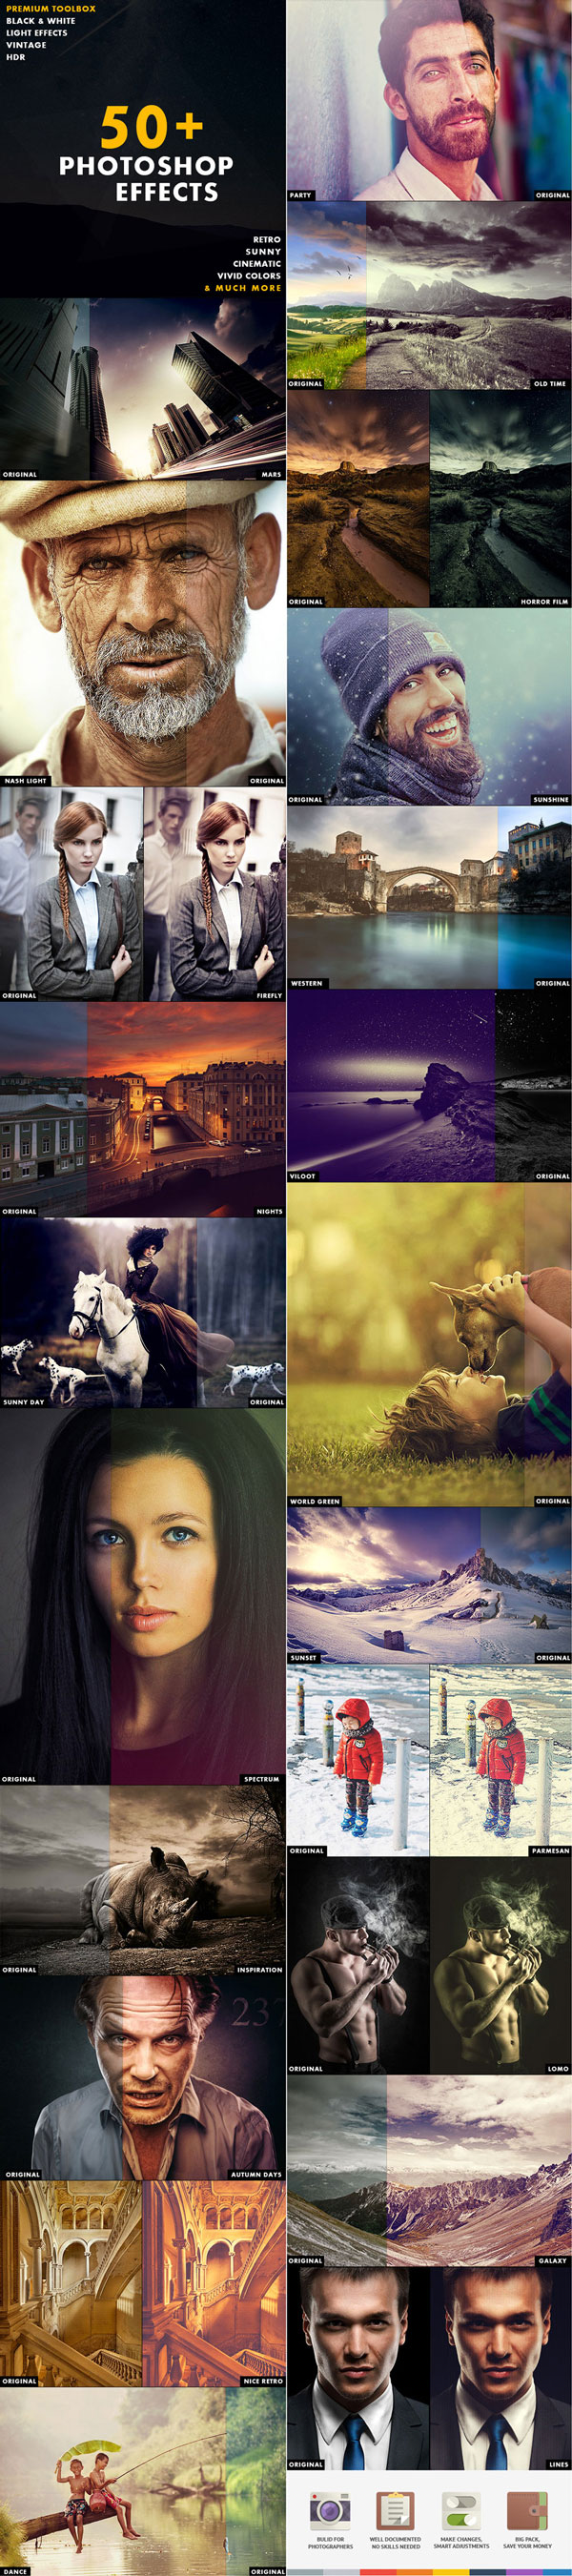 GraphicRiver 50+ Photoshop Effects